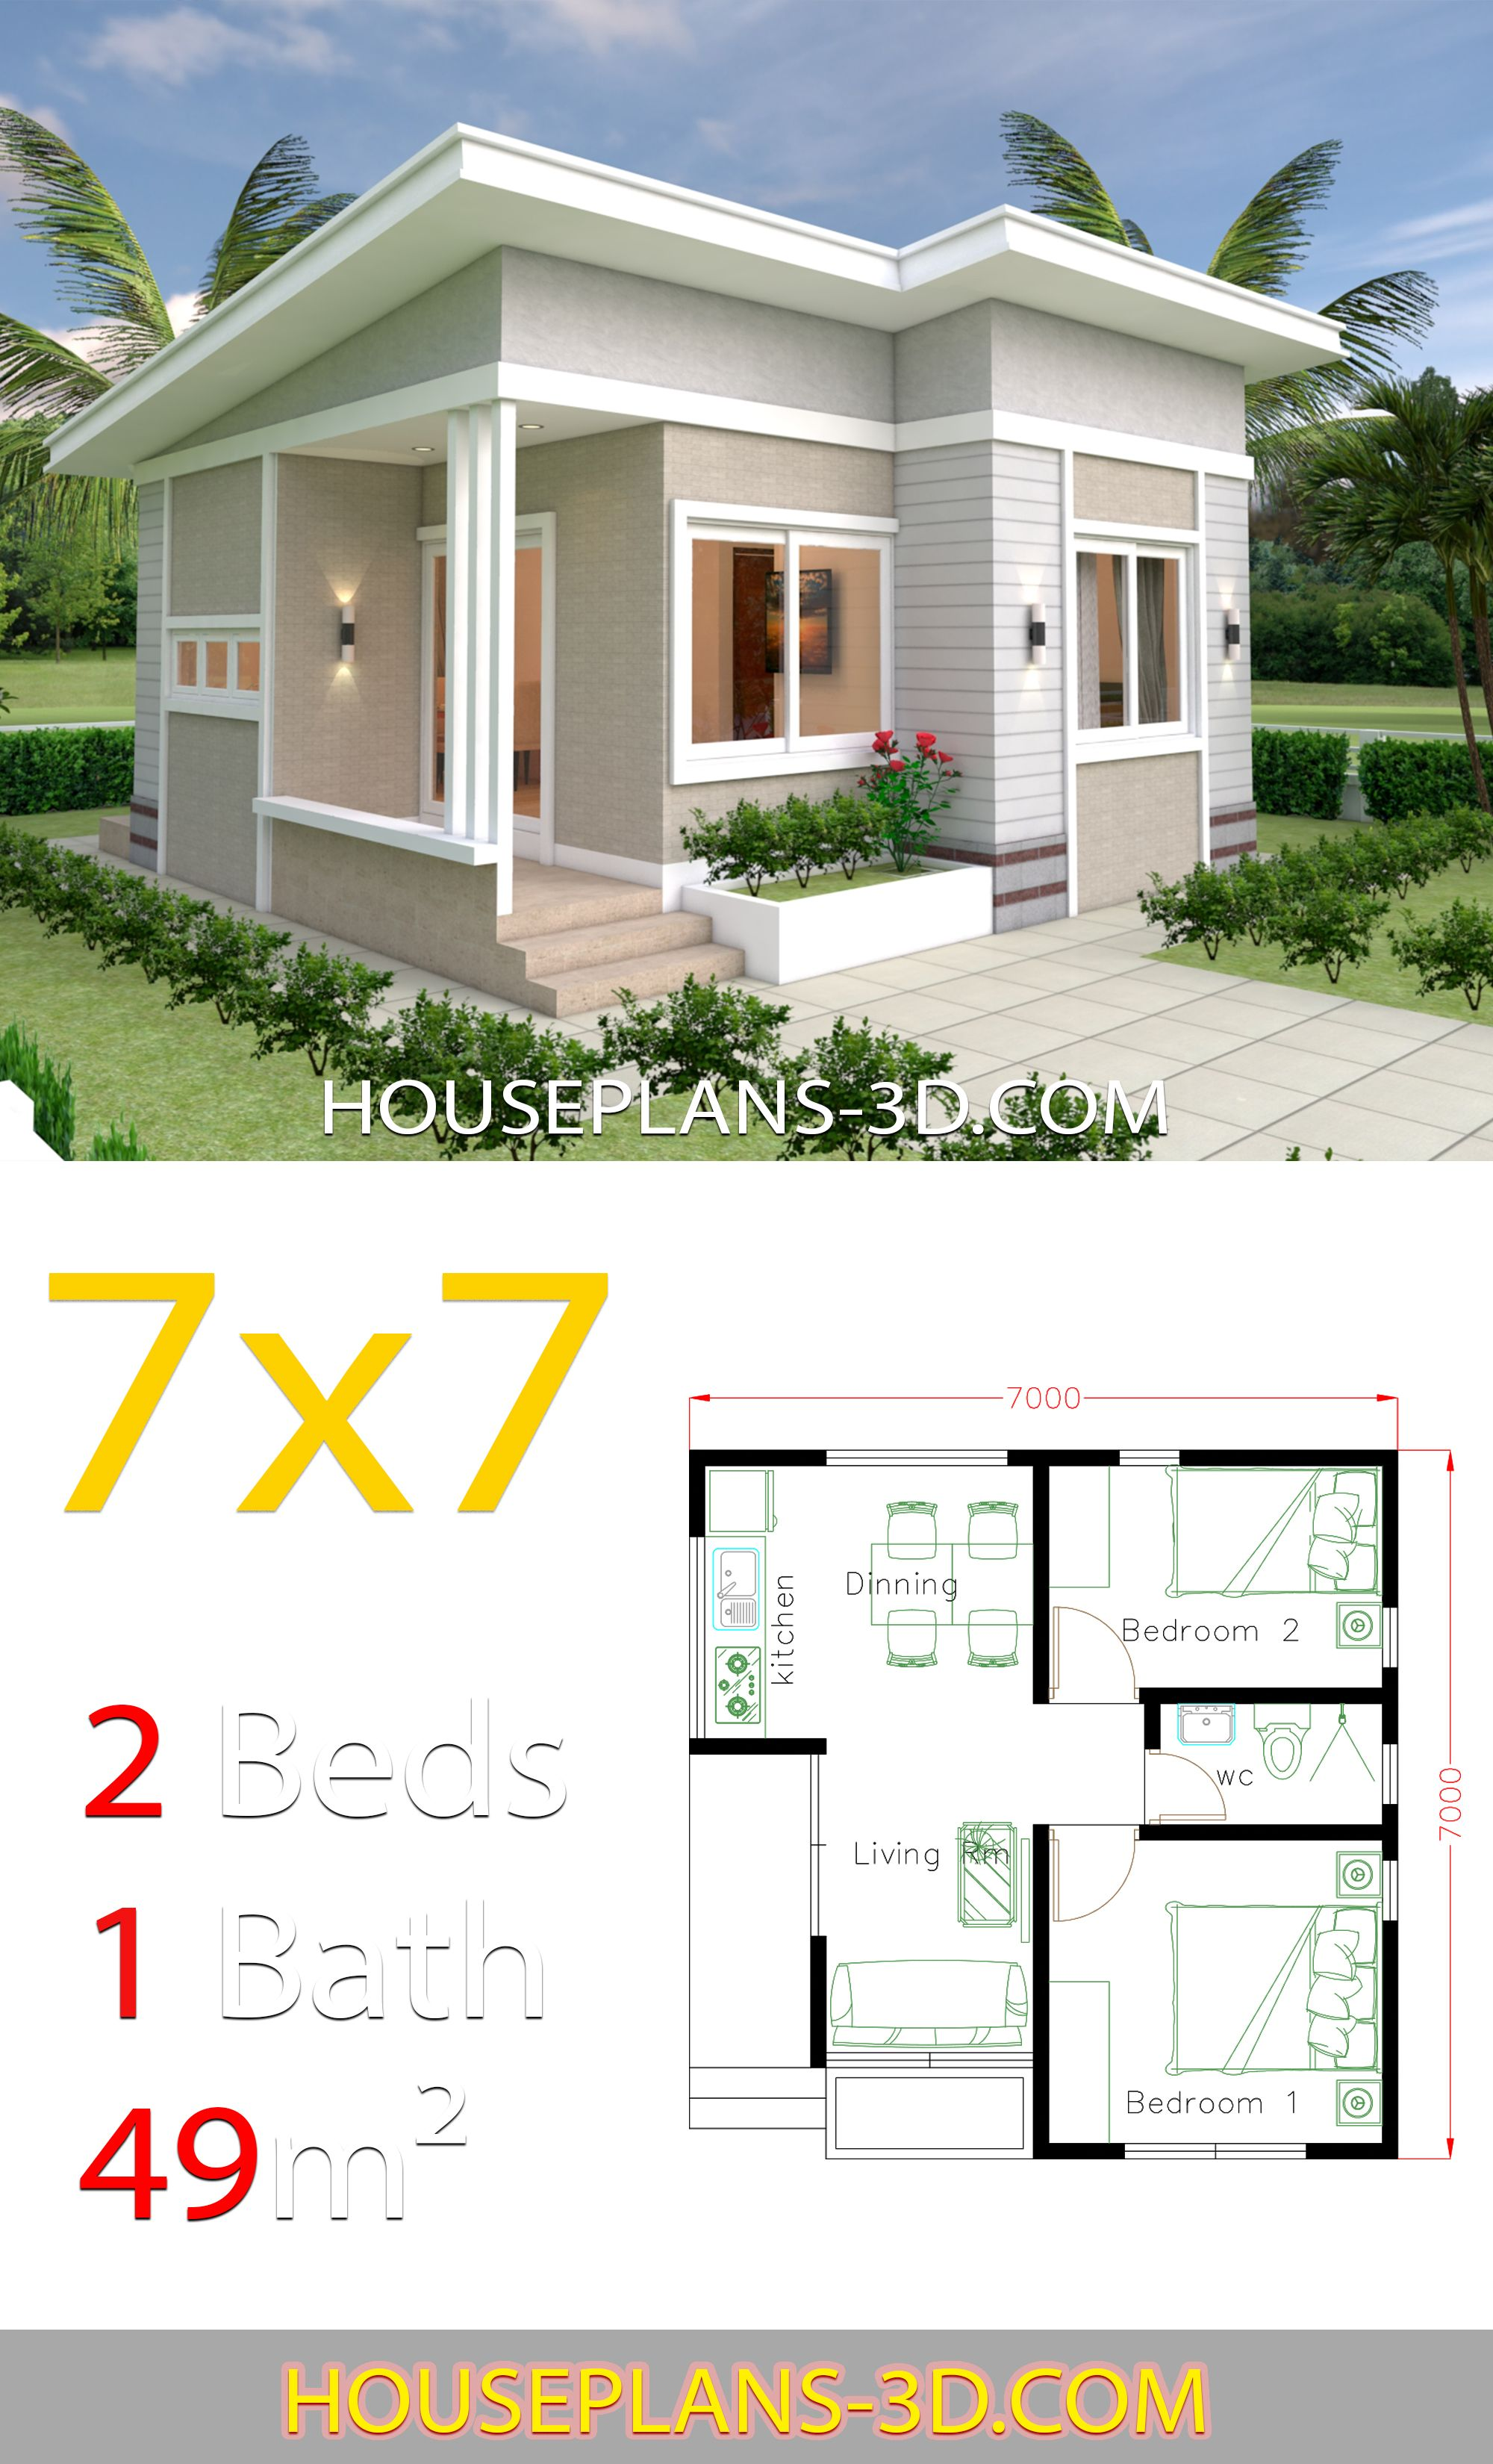 Small House Design Plans 7x7 With 2 Bedrooms House Plans 3d In 2020 Small House Design Plans Small House Design House Plans